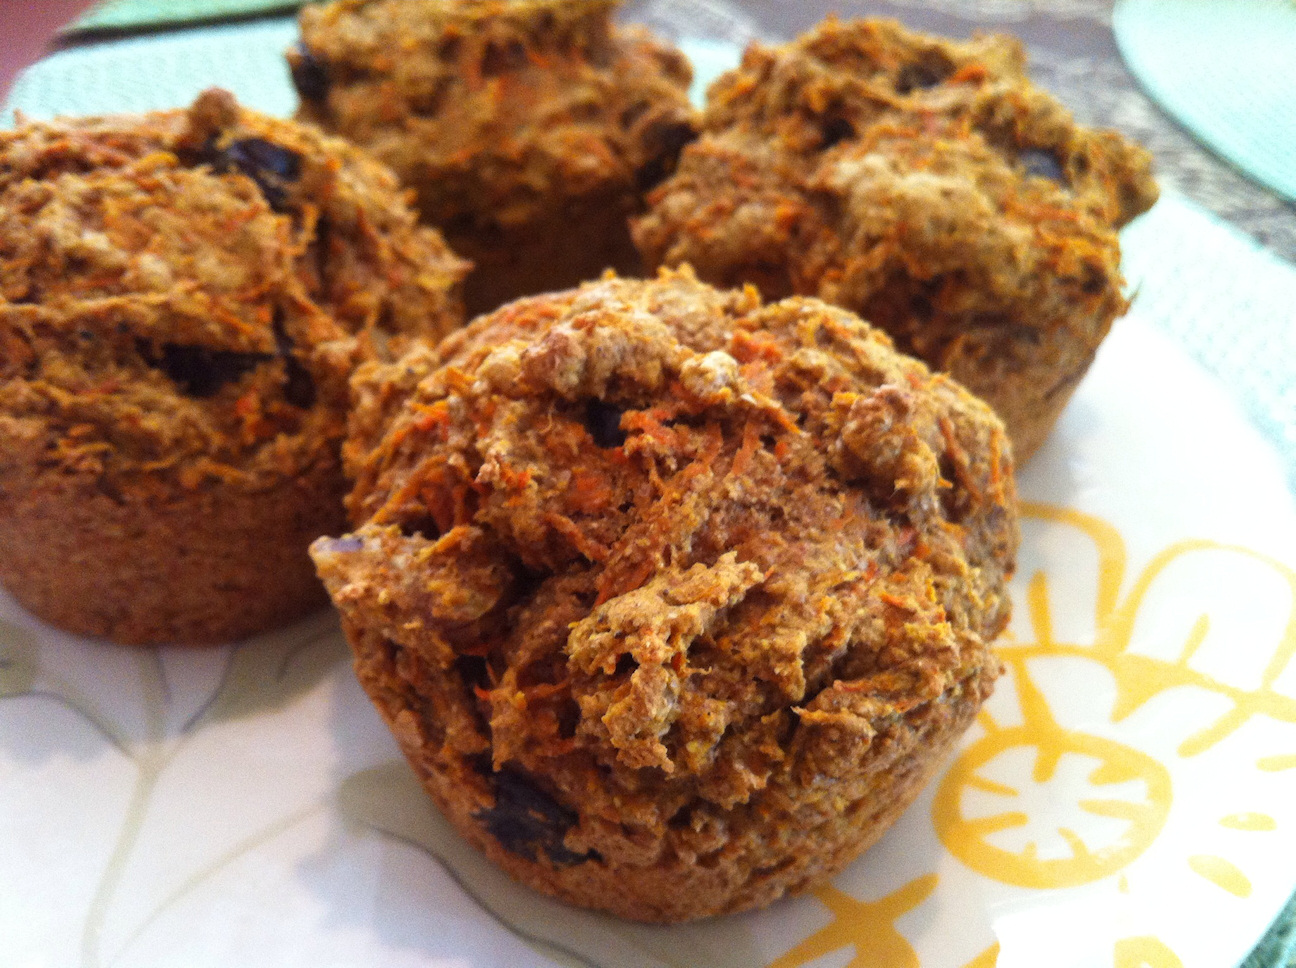 whole grain carrot spice muffins yields 12 muffins